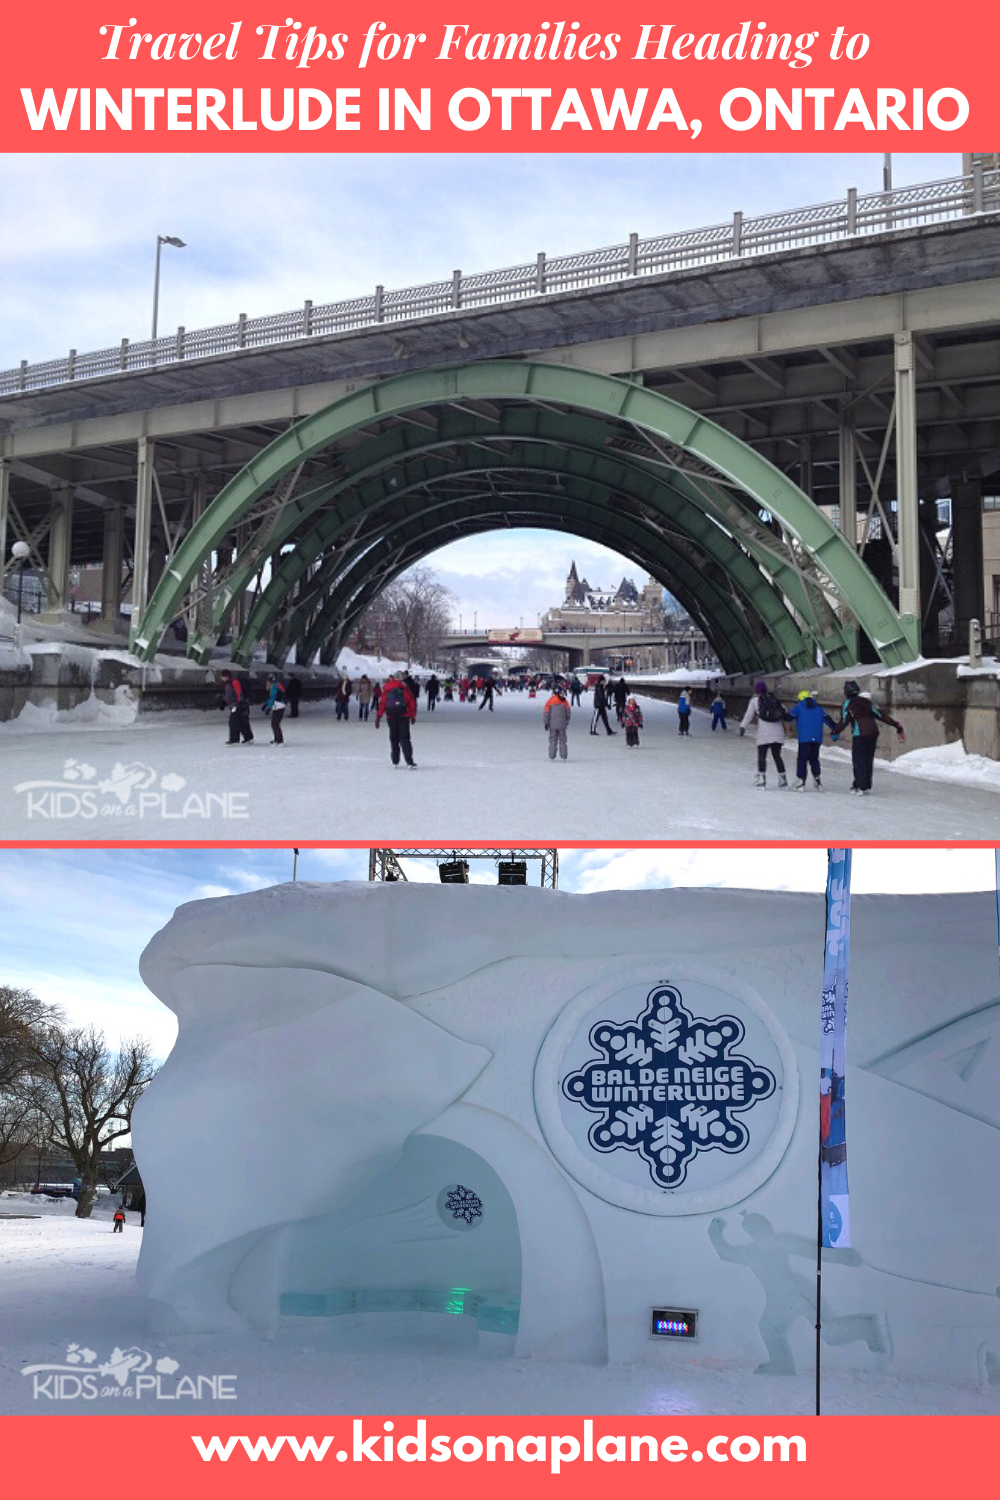 Top Travel Tips for Families with Kids Going to Winterlude 2020 in Ottawa Canada